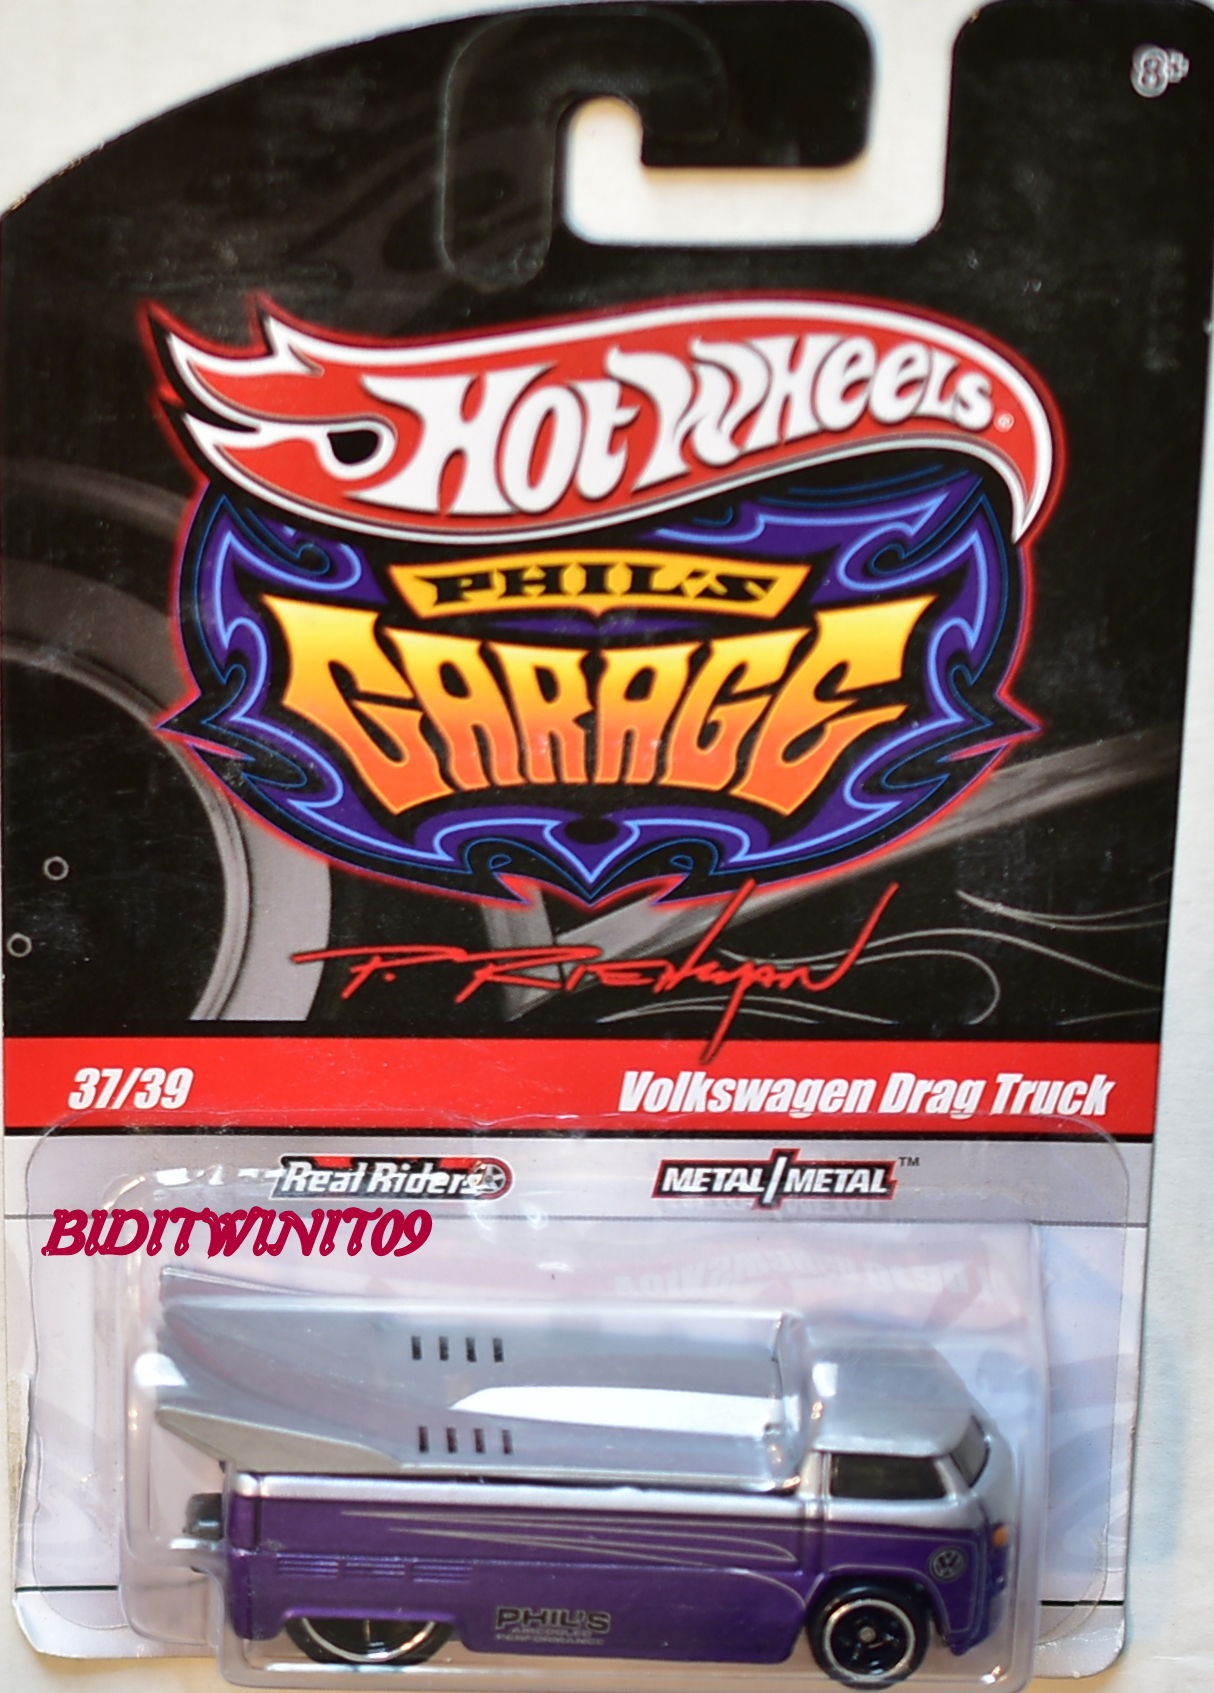 HOT WHEELS PHIL'S GARAGE #37/39 VOLKSWAGEN DRAG TRUCK PURPLE